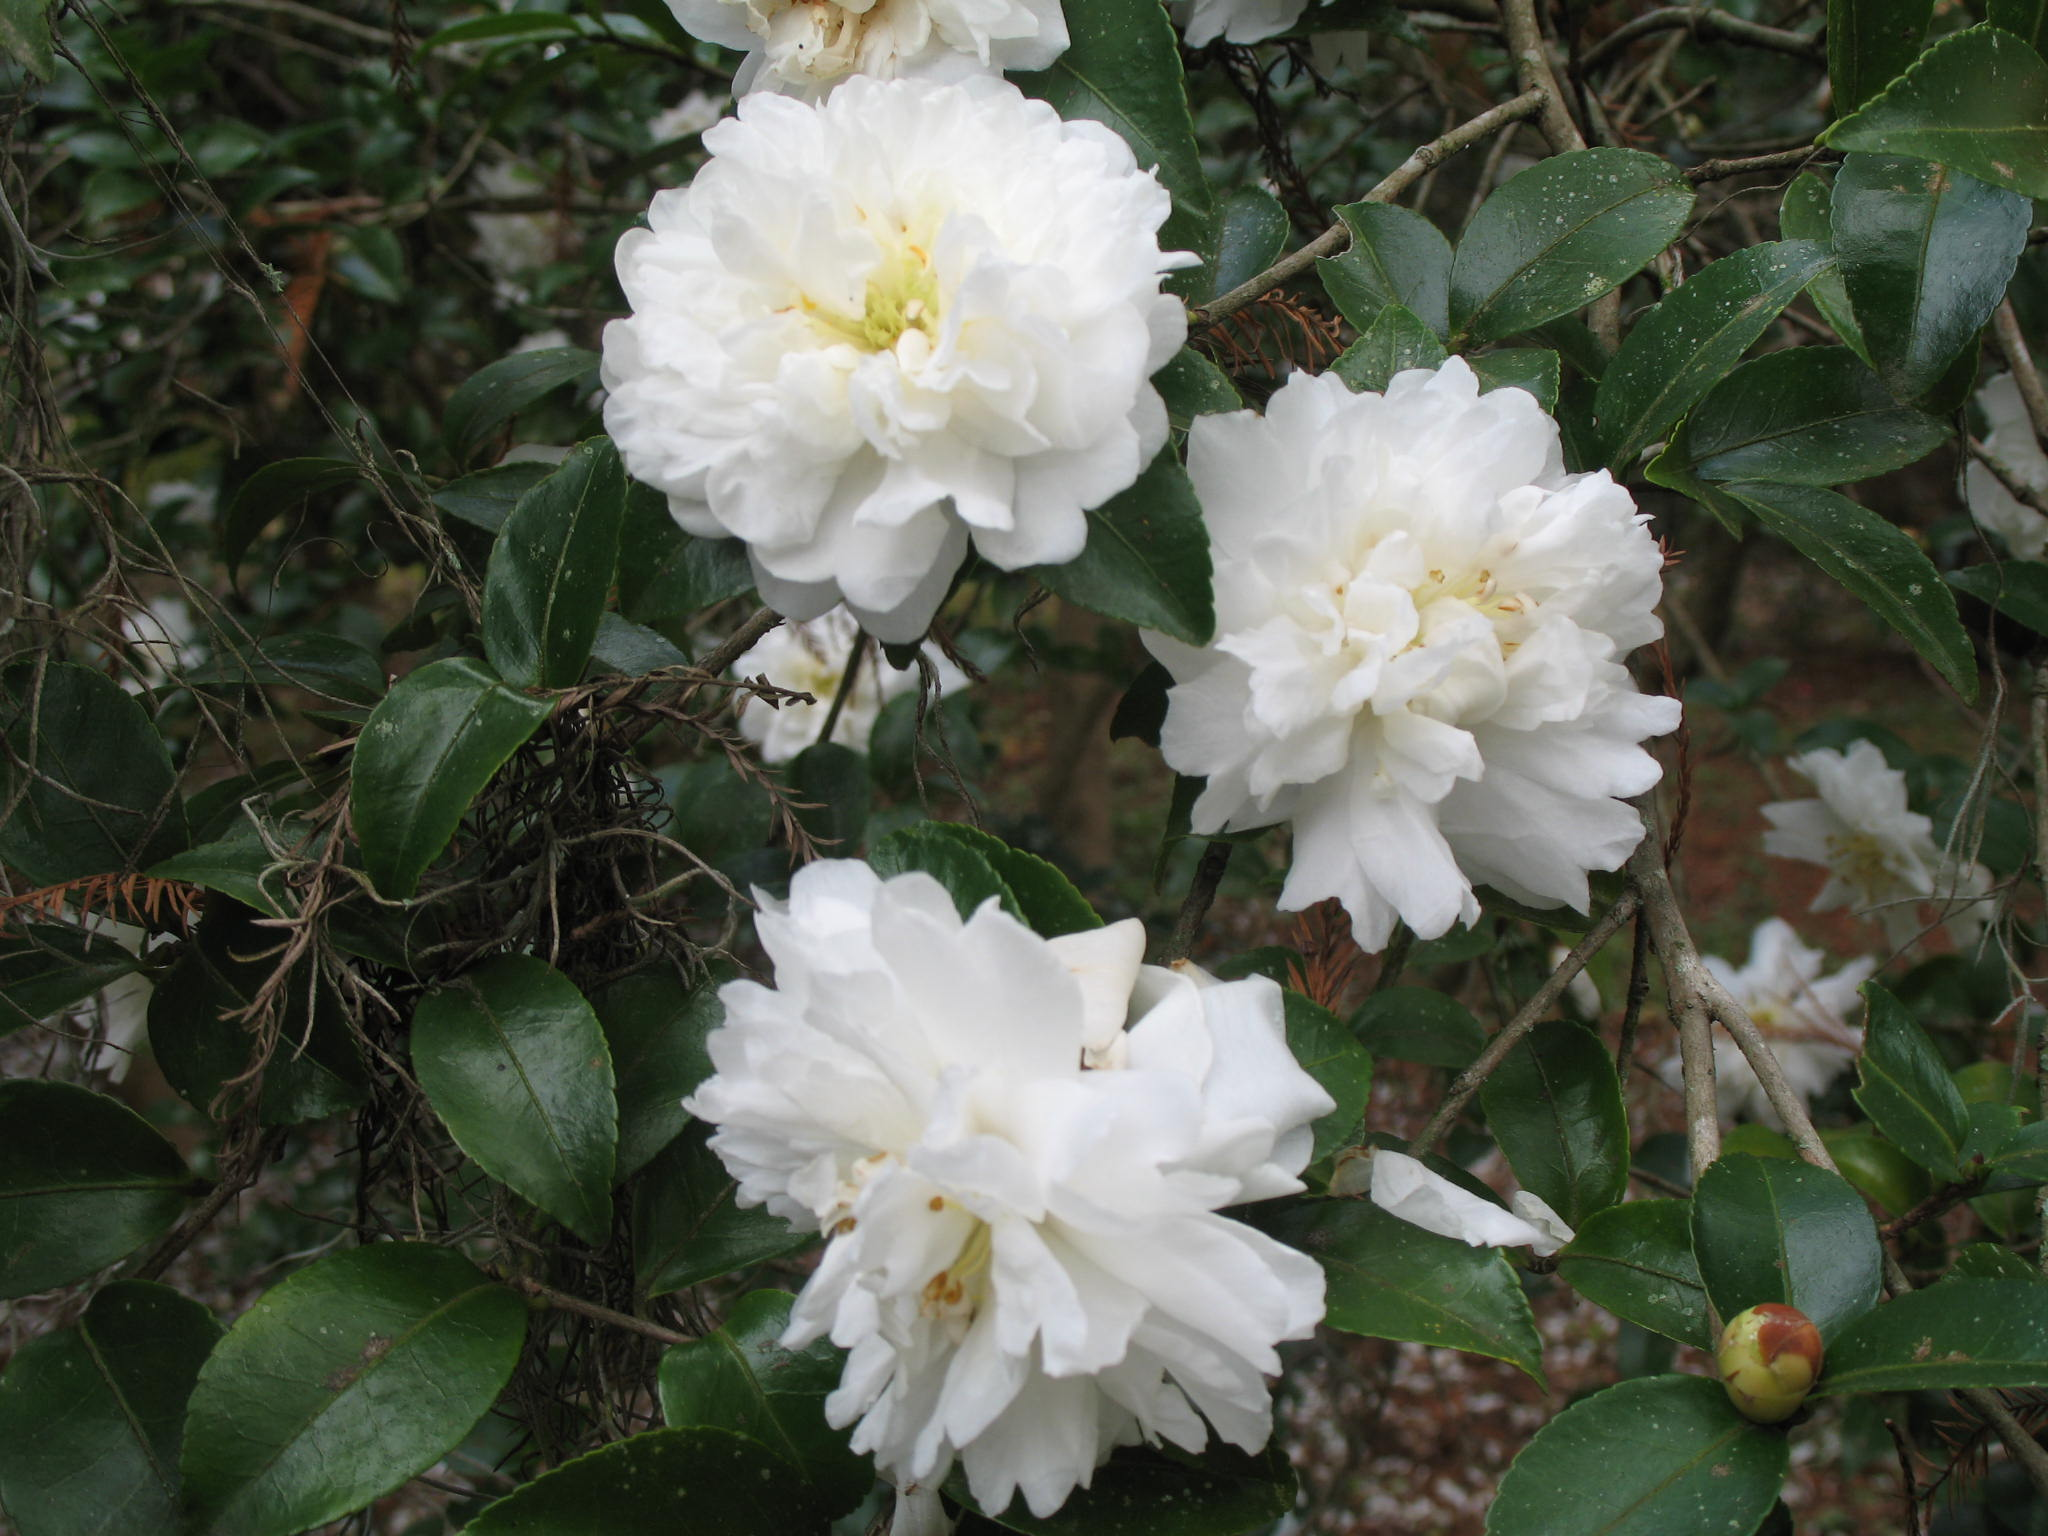 Camellia sasanqua 'Snow on the Mountain'   / Camellia sasanqua 'Snow on the Mountain'